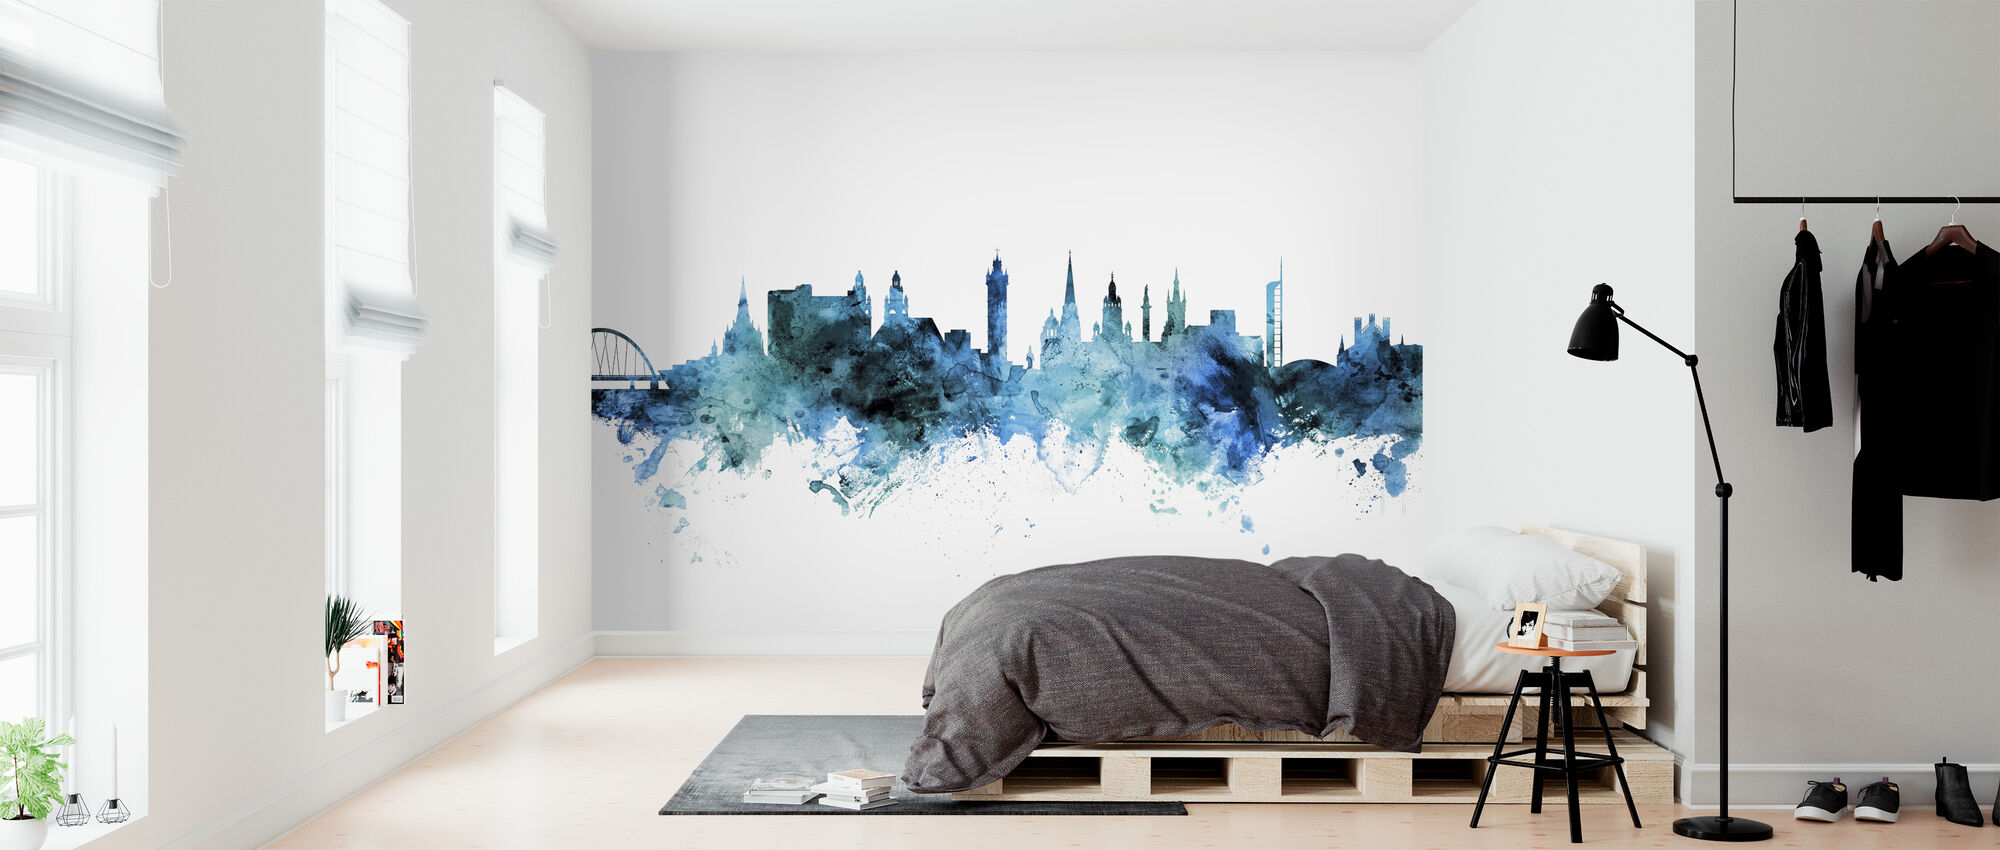 Glasgow Scotland Skyline - Wallpaper - Bedroom